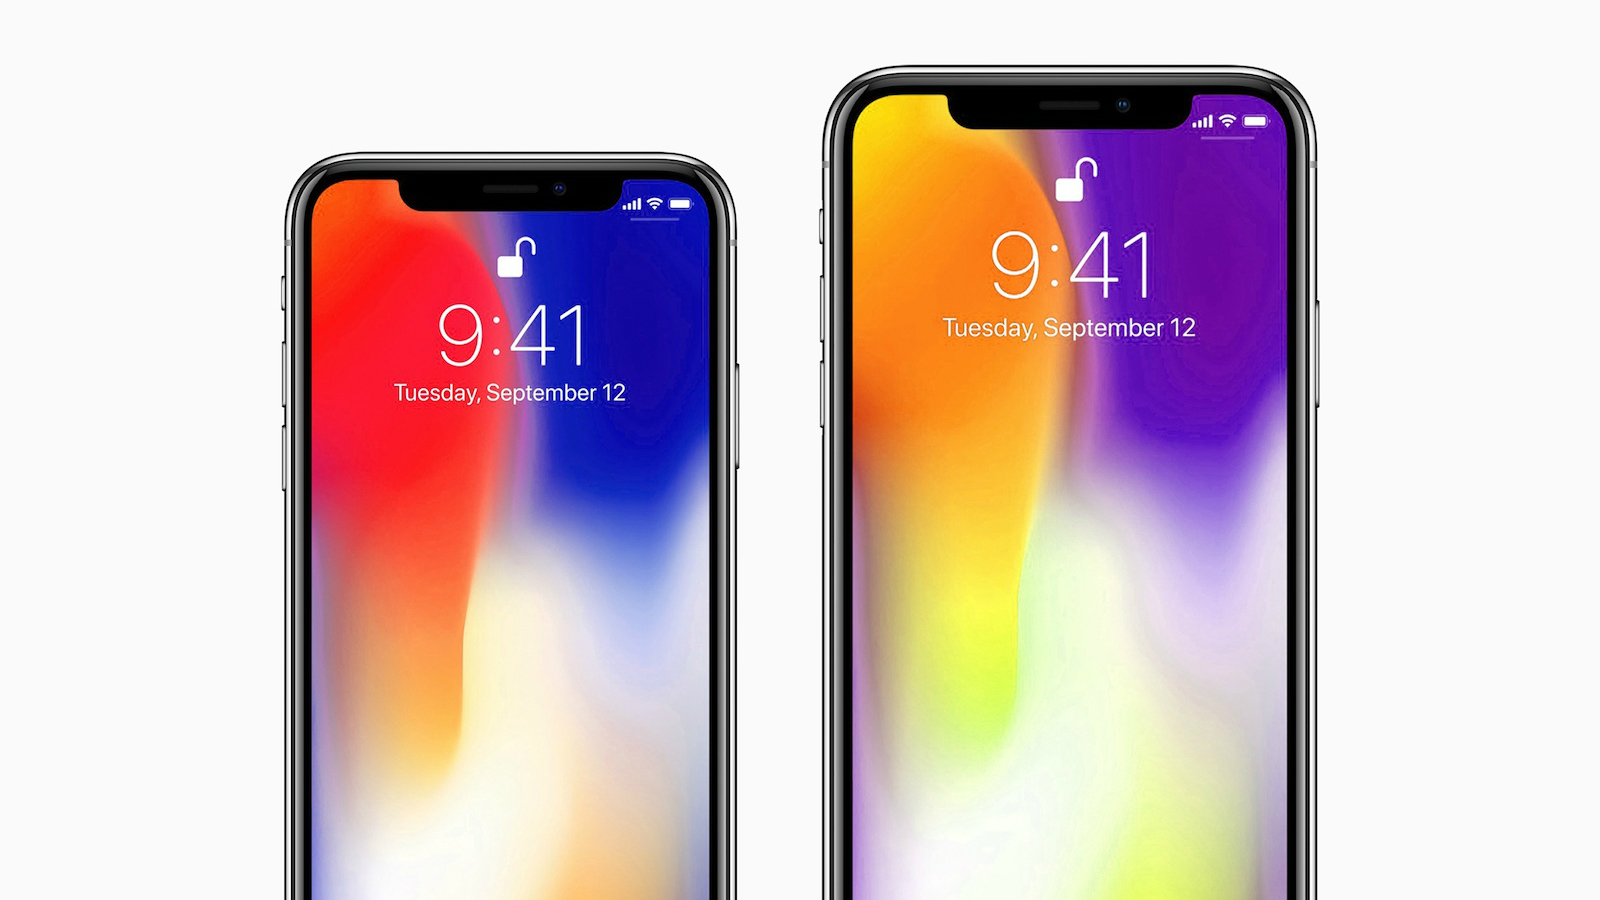 iPhone X Plus avrà un display OLED da 6.5 pollici, secondo i primi render thumbnail